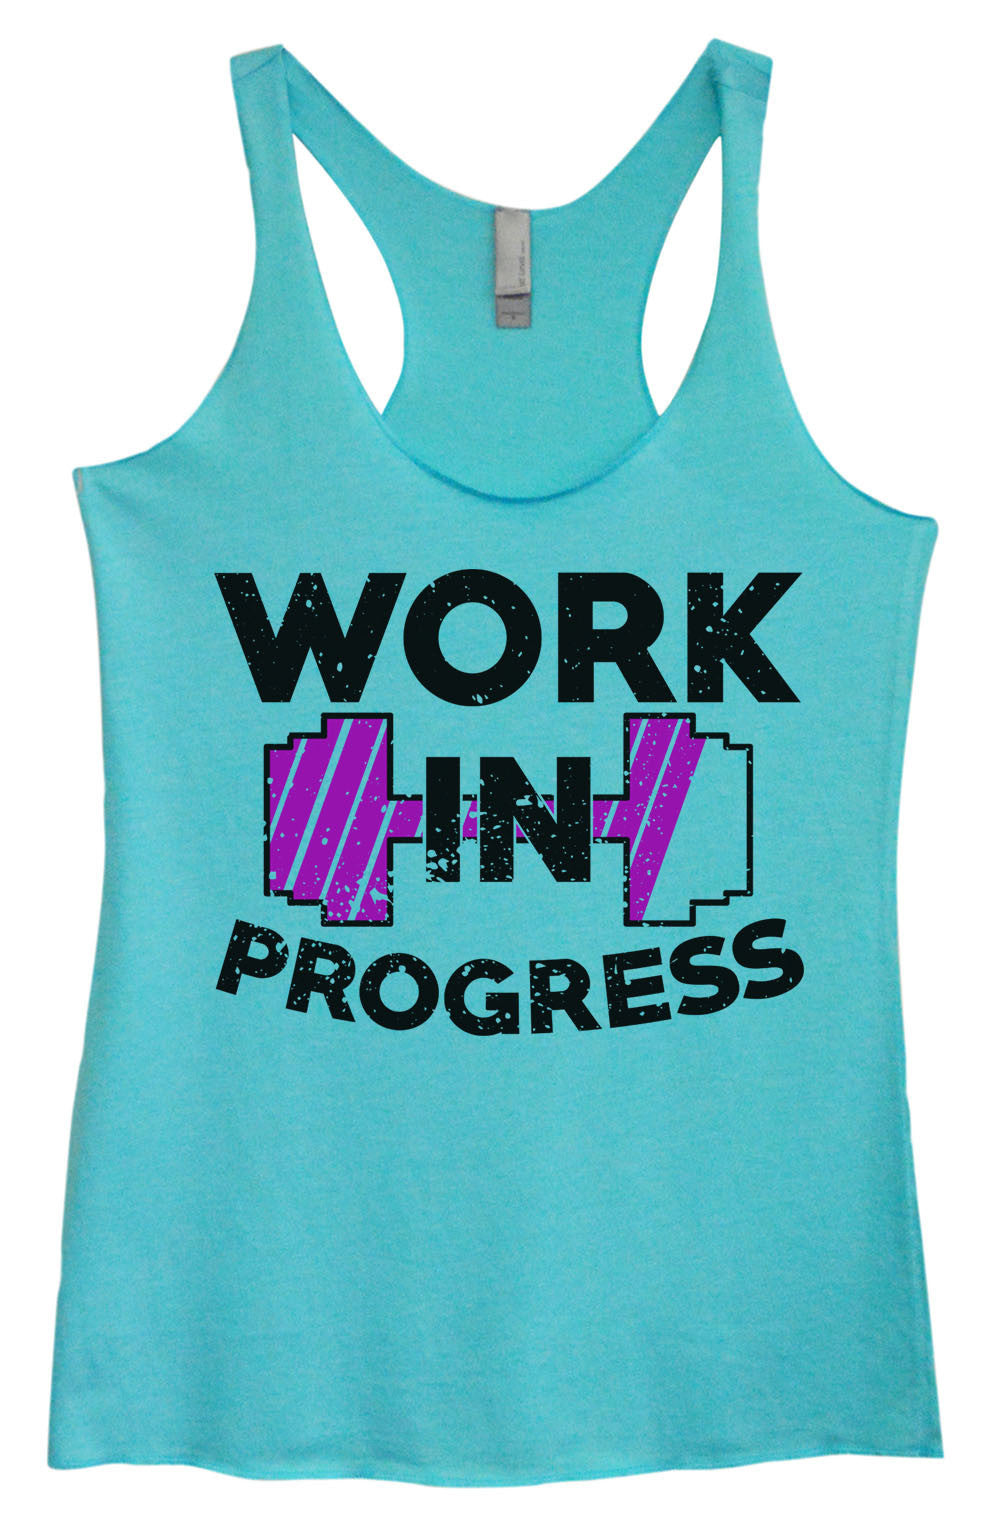 Womens Fashion Triblend Tank Top - Work In Progress - Tri-962 - Funny Shirts Tank Tops Burnouts and Triblends  - 1